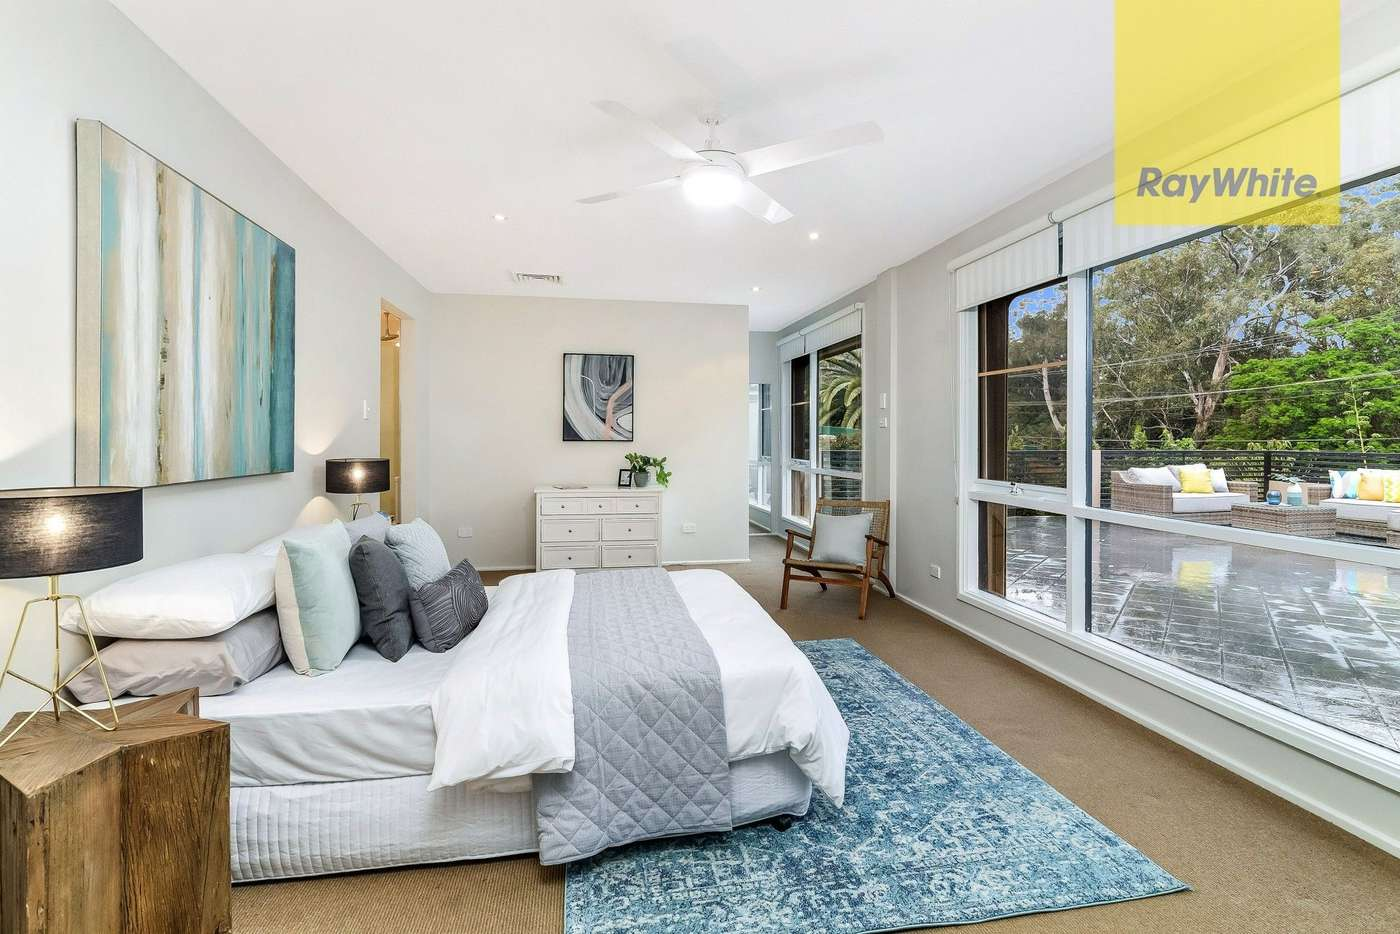 Fifth view of Homely house listing, 23 Vanessa Avenue, Baulkham Hills NSW 2153